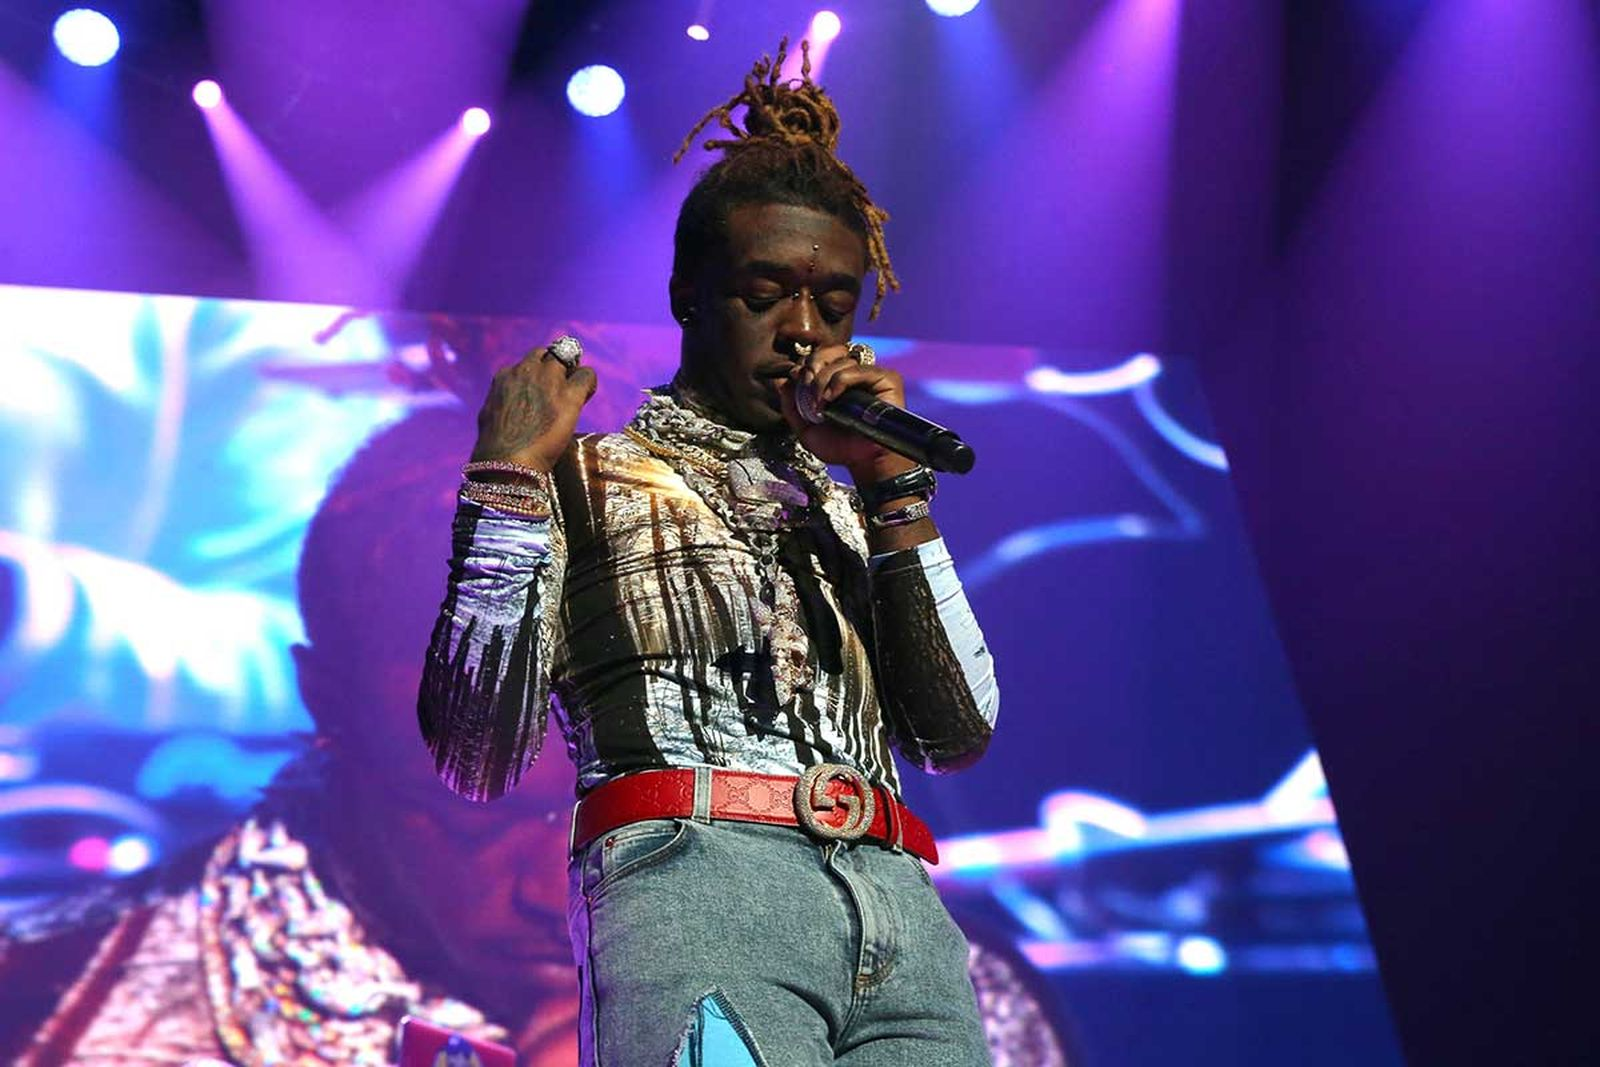 Lil Uzi Vert Responds To Plagiarism Claim On That Way Cover Art A collection of the top 36 lil uzi vert wallpapers and backgrounds available for download for free. lil uzi vert responds to plagiarism